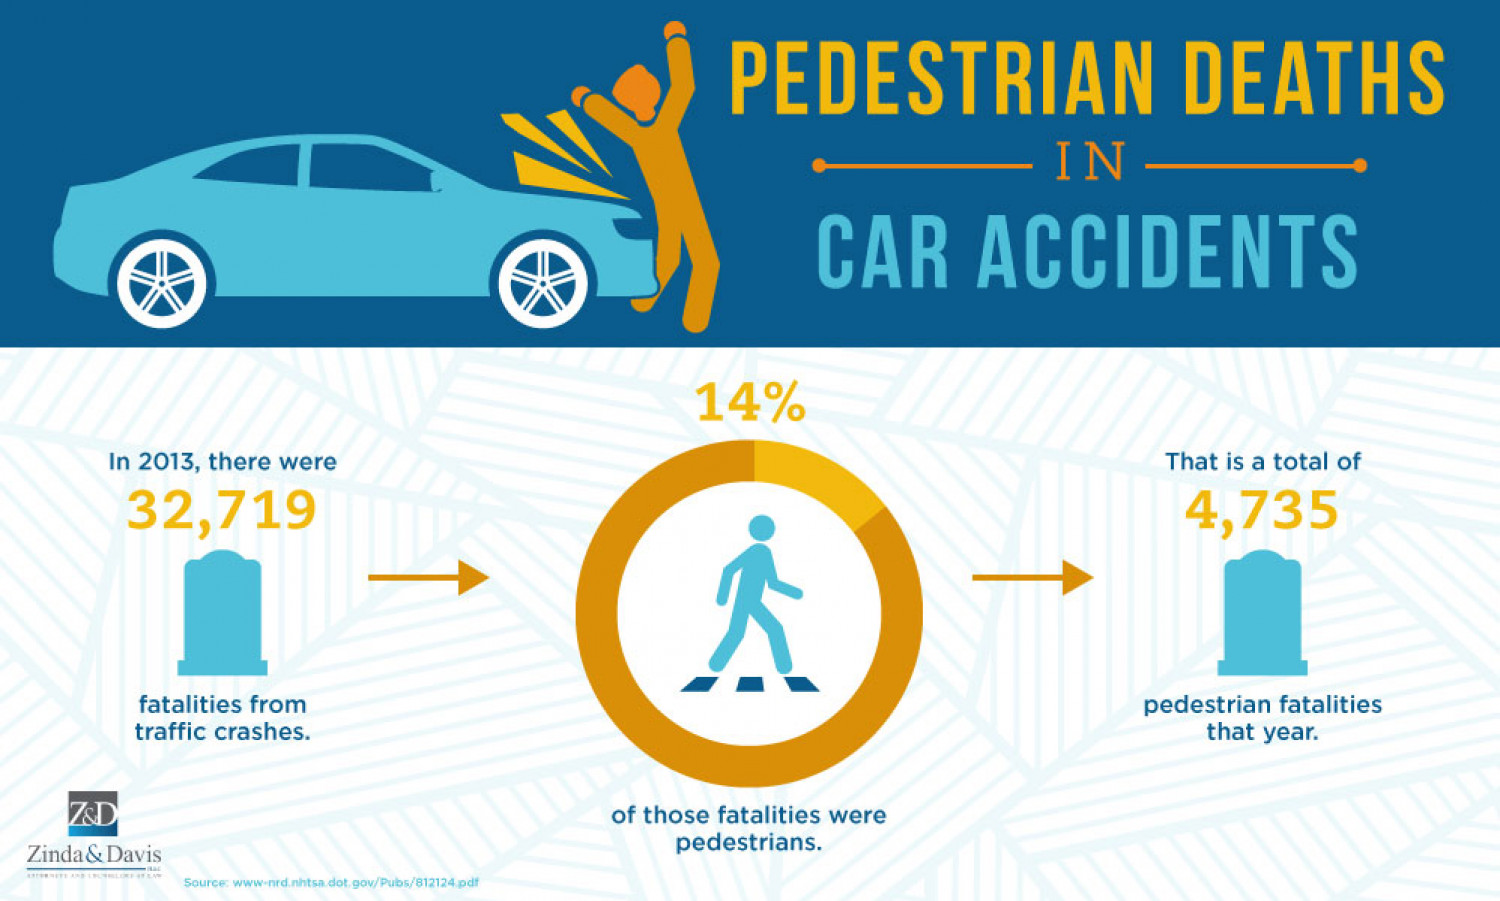 Pedestrian Deaths in Car Accidents in 2013 Infographic